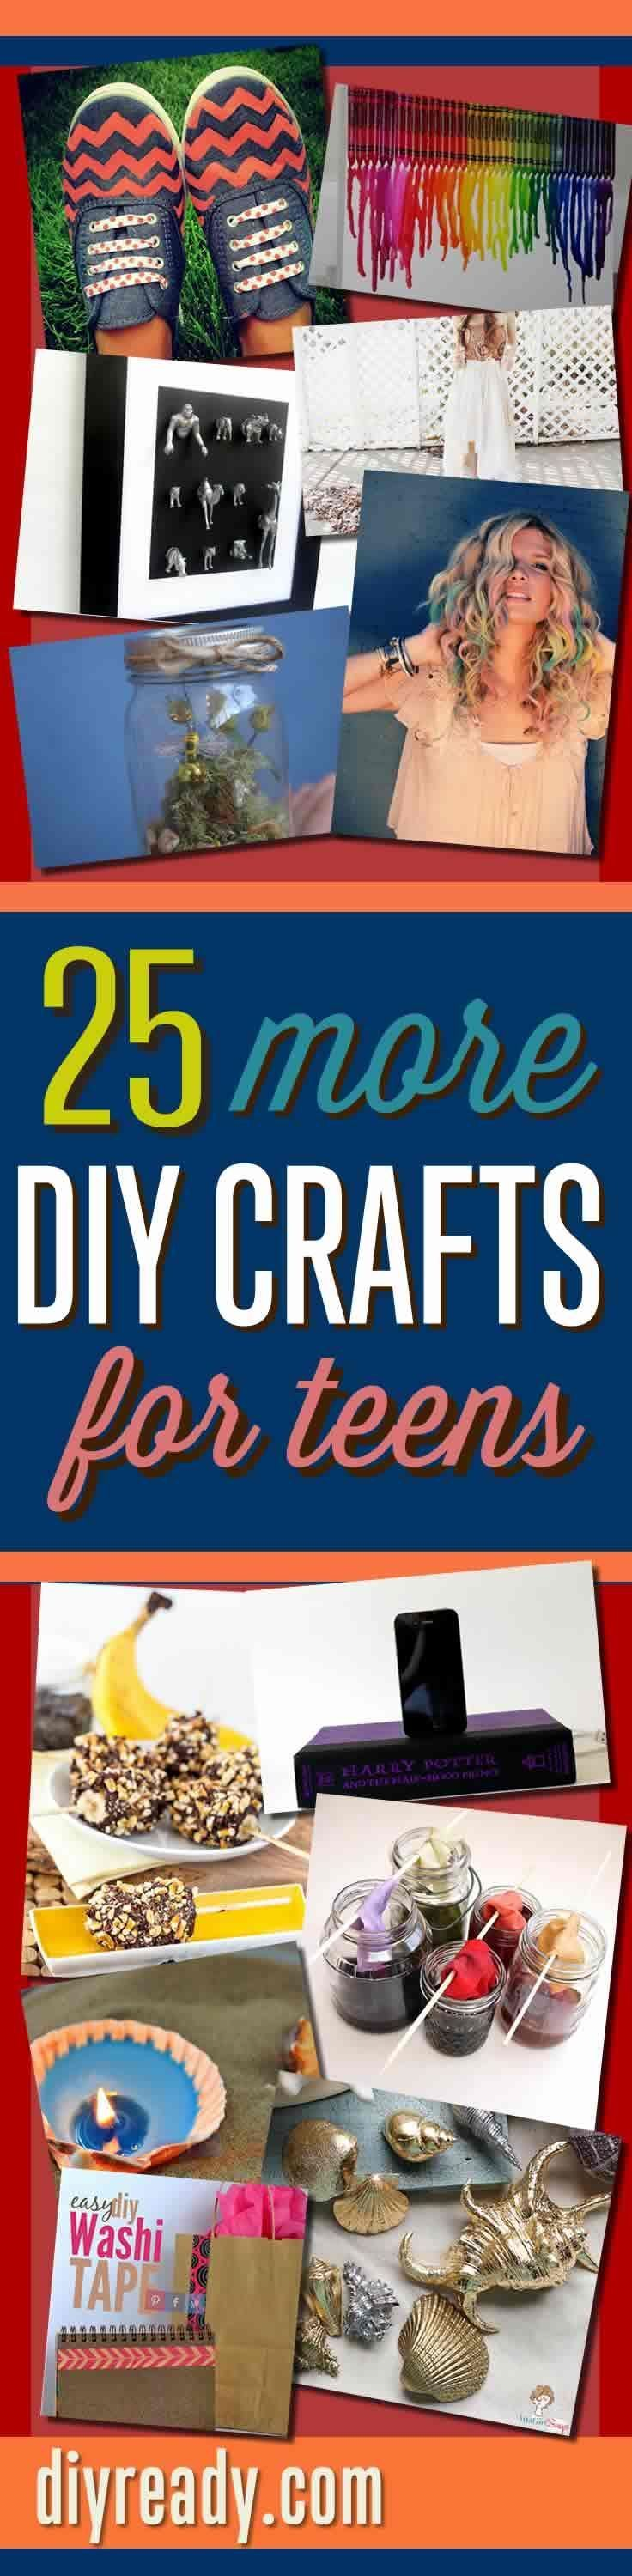 DIY Projects for Teens. Crafts Girls and Boys Love with 25 Cool Craft Projects Ideas and Easy to Follow Tutorials for Teenagers and Tweens http://diyready.com/25-more-cool-projects-for-teens-cool-crafts-for-teens/